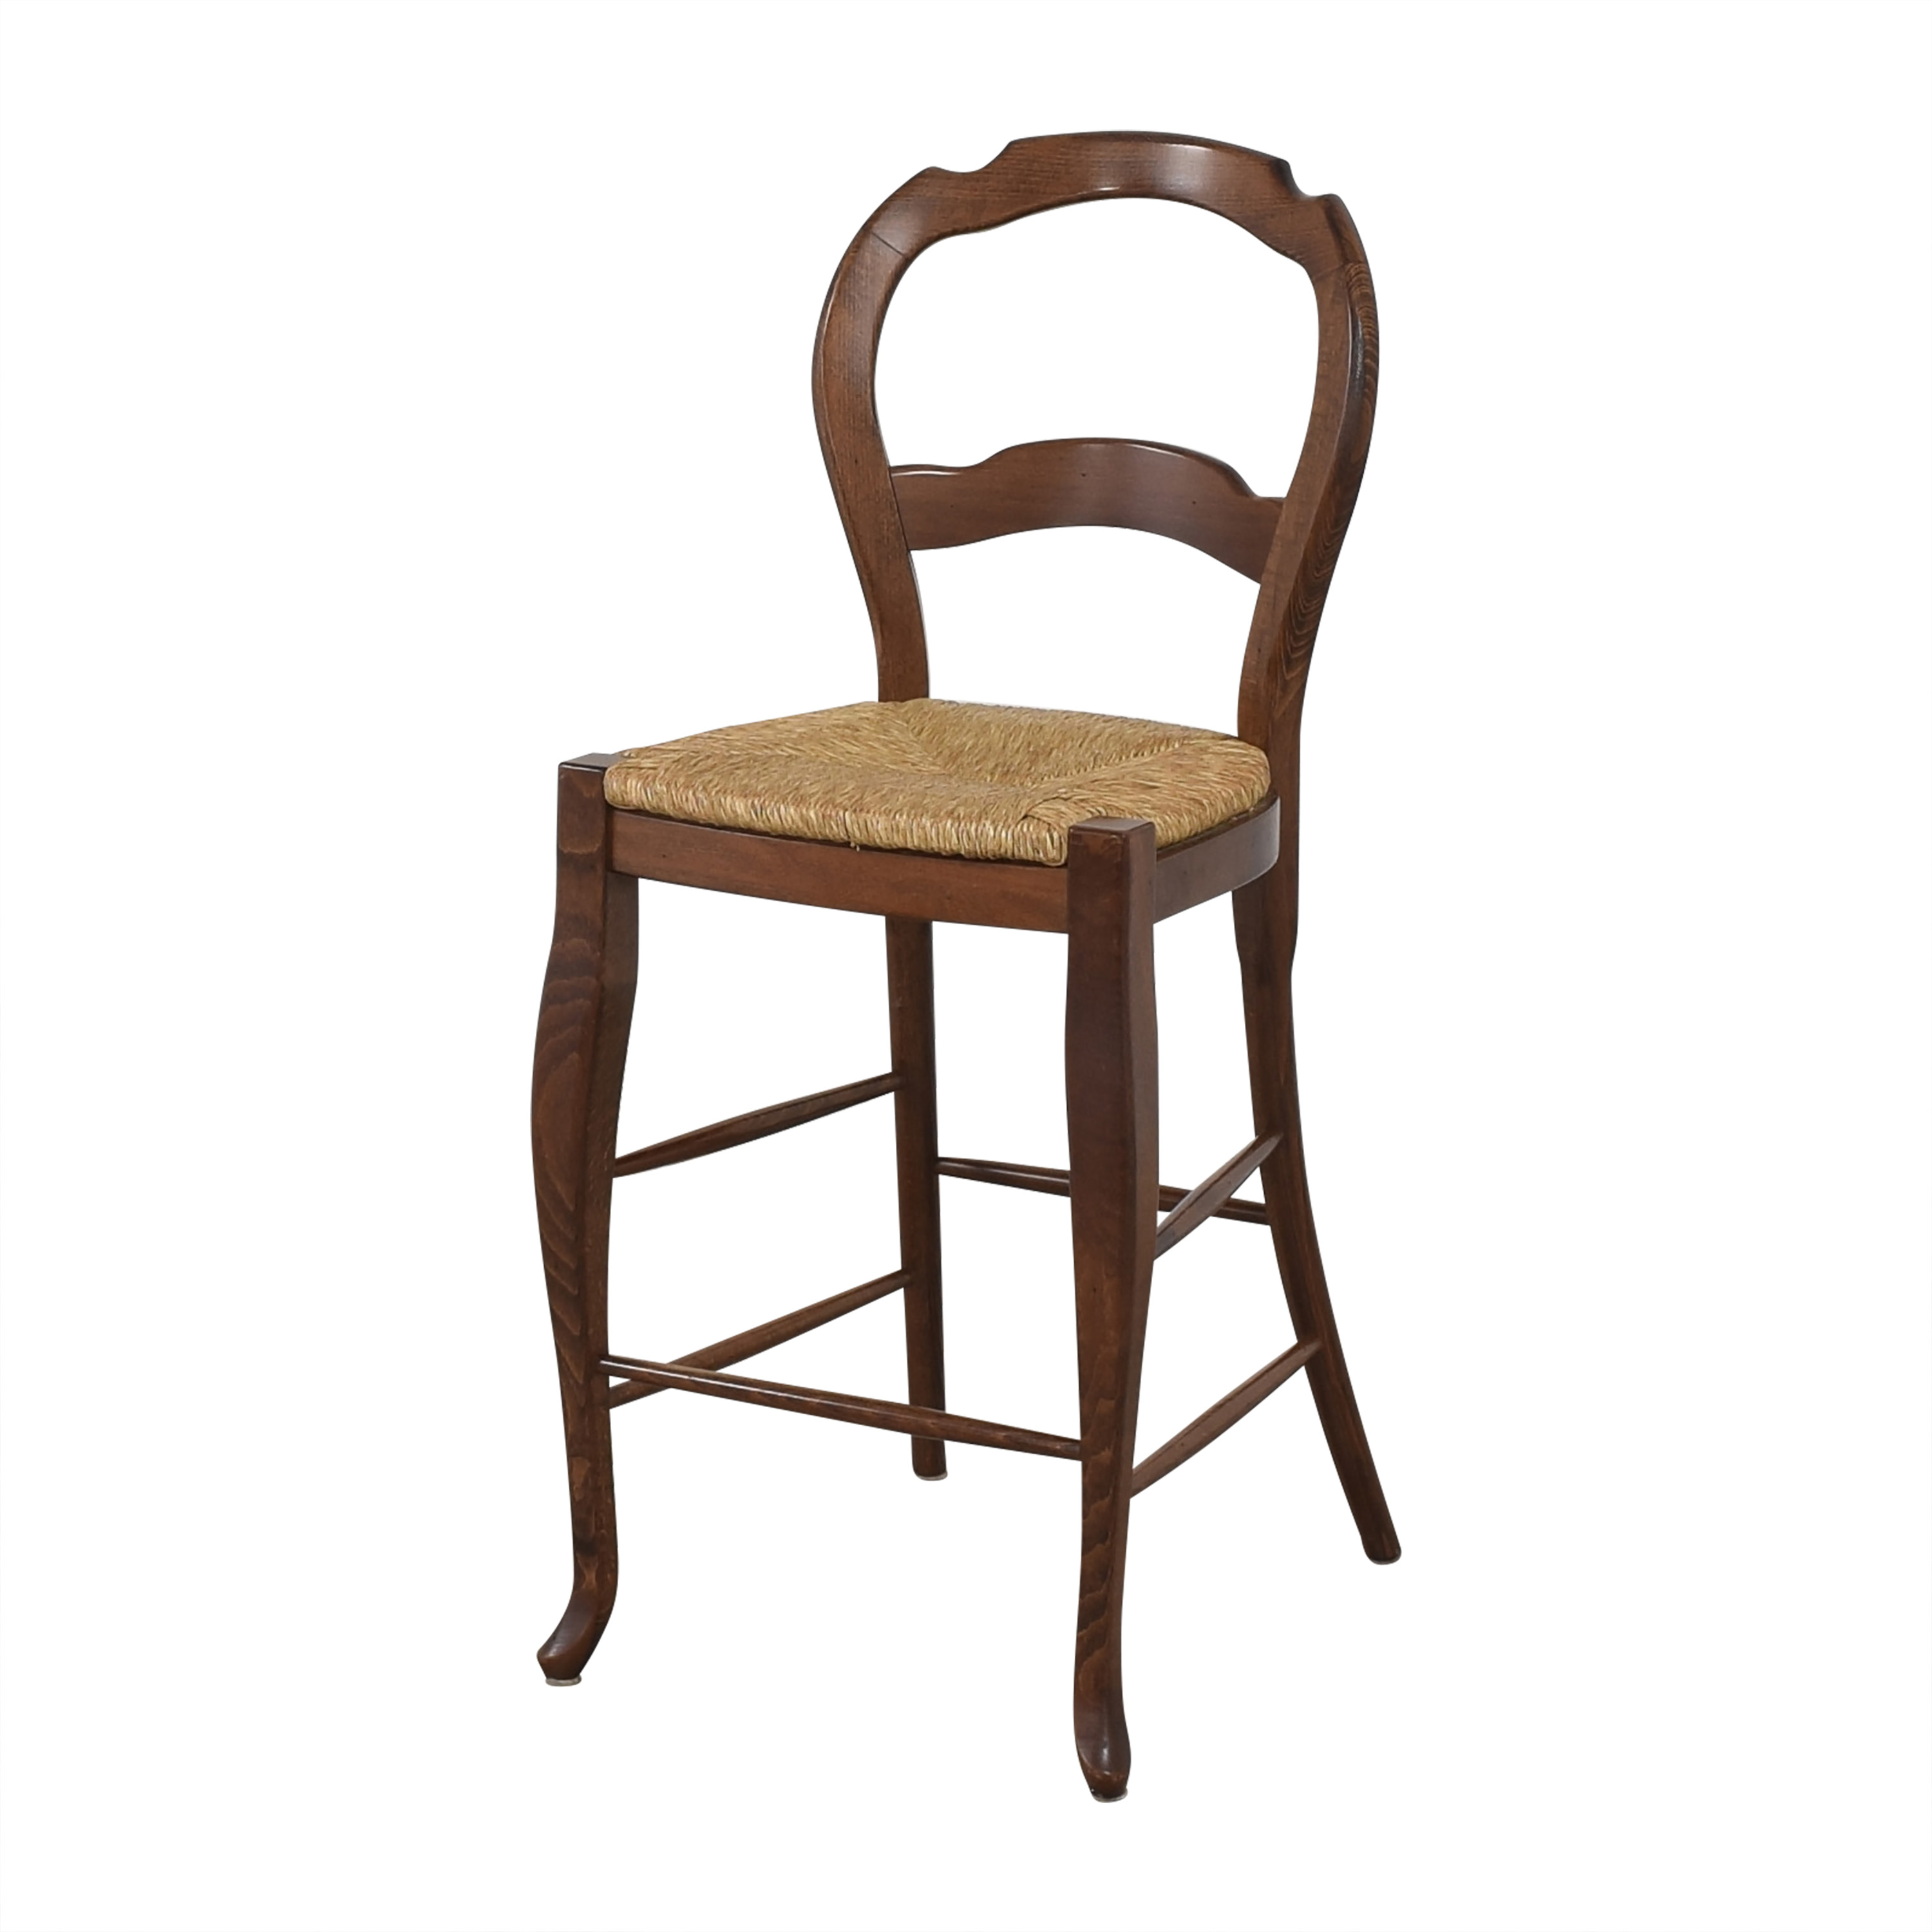 shop Pottery Barn French Country Counter Stools Pottery Barn Chairs